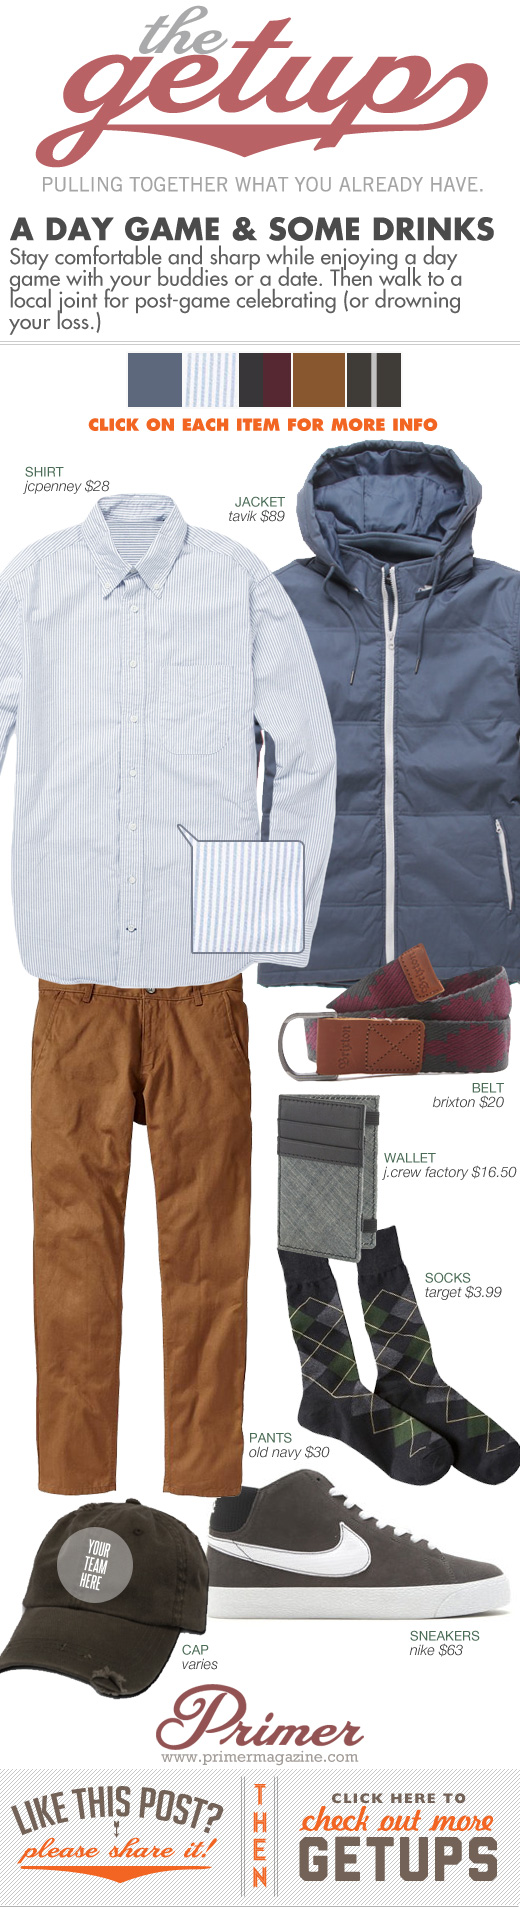 Getup A Day Game and some Drinks - Nylon jacket, striped shirt, brown pants